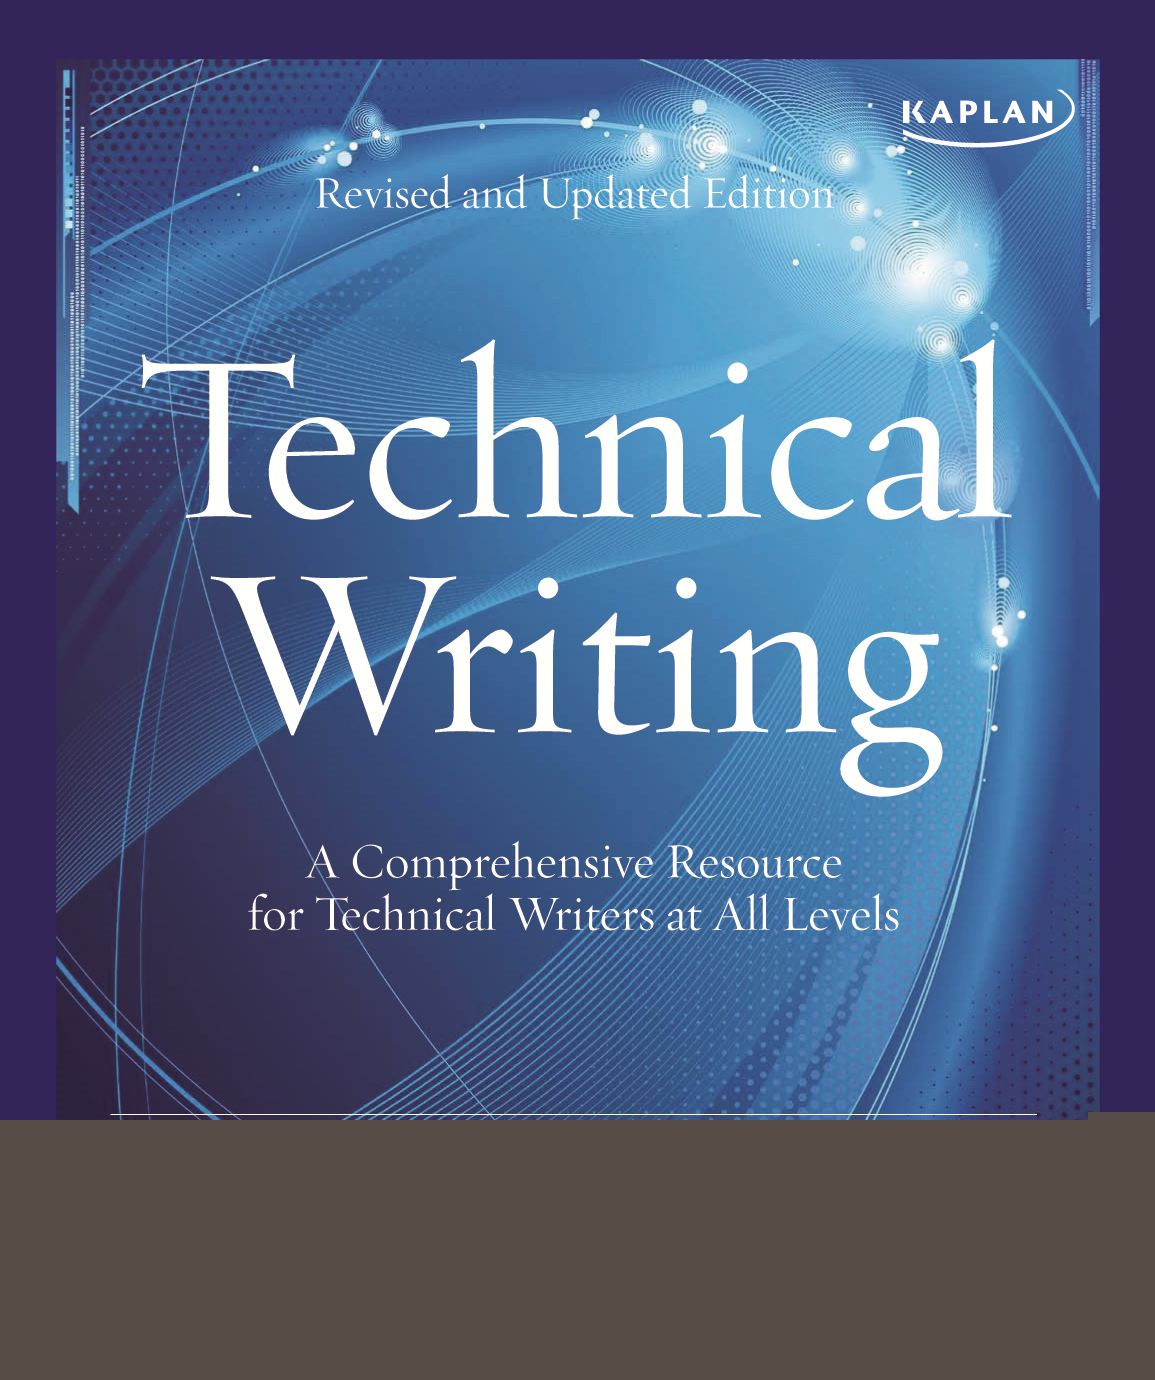 Kaplan Technical Writing By: Carolyn Stevenson,Carrie Hannigan,Carrie Wells,Diane Martinez,Tanya Peterson